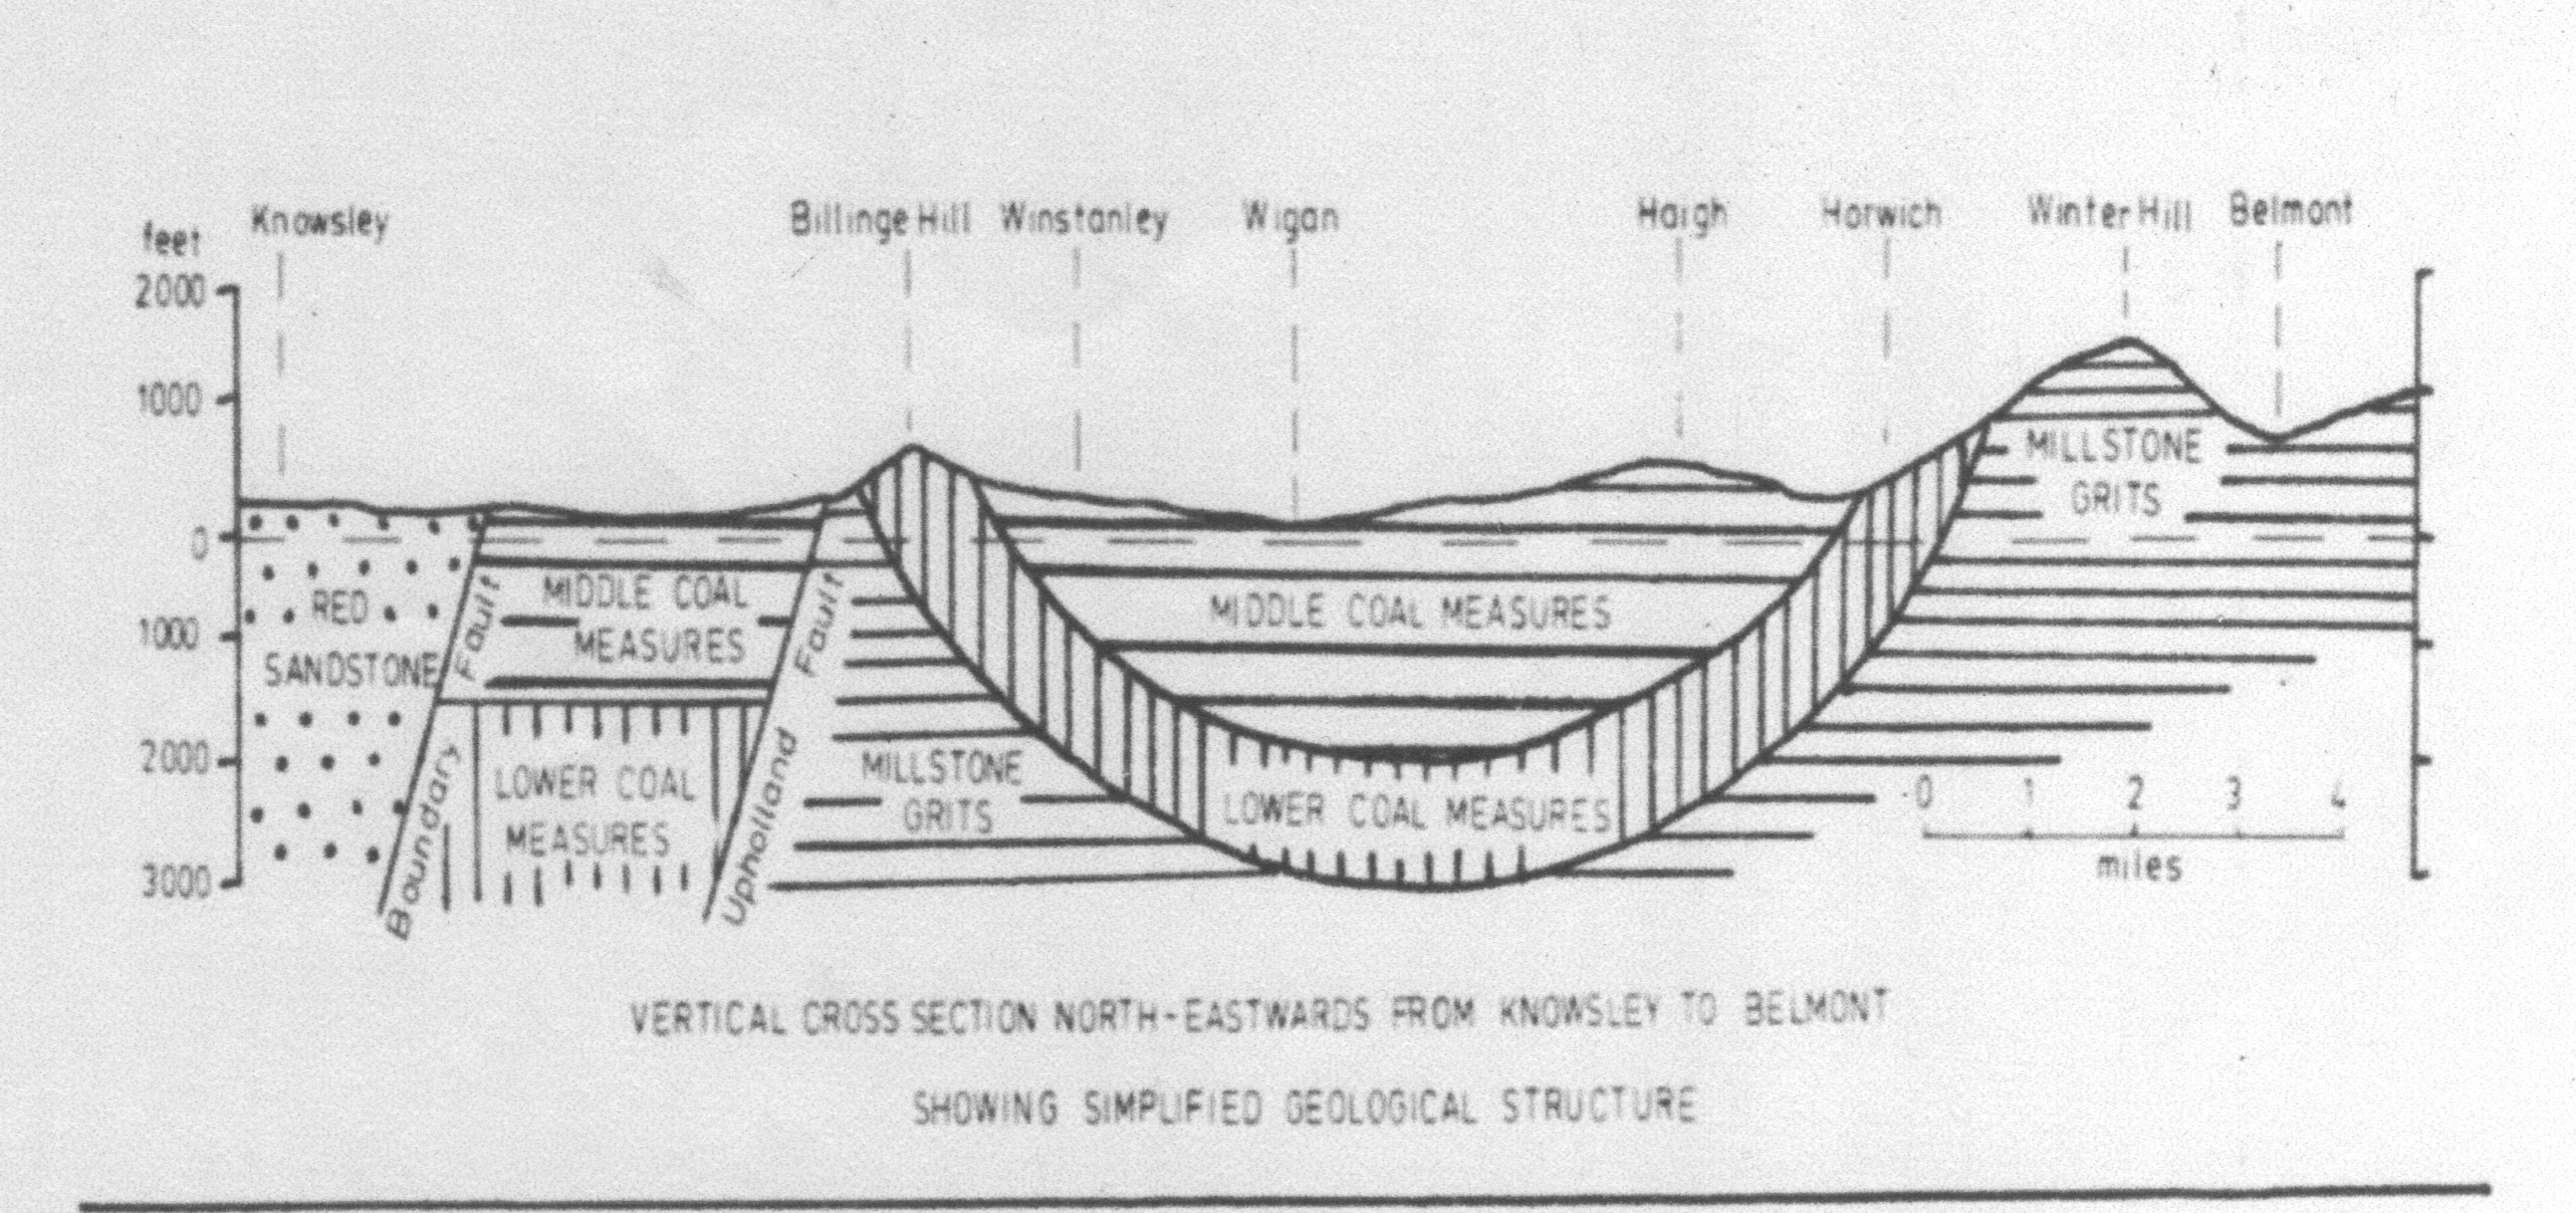 Slag Cross Section : The history of land where three sisters stands